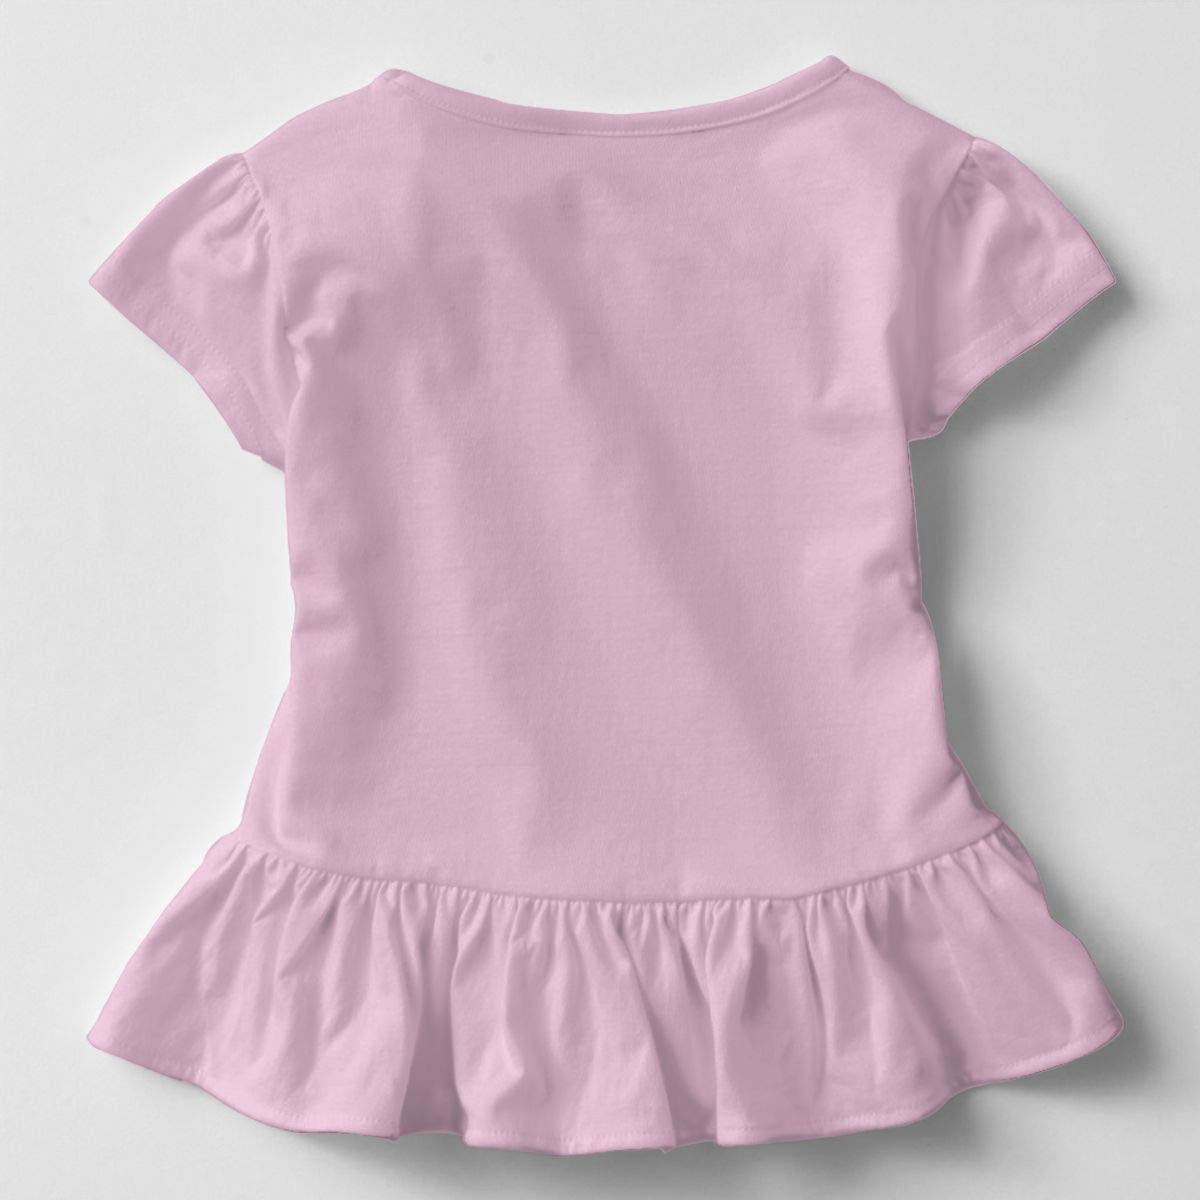 My Siblings Have Tails Baby Skirts Stylish Kids T Shirt Dress Short Sleeve Flounces Layette